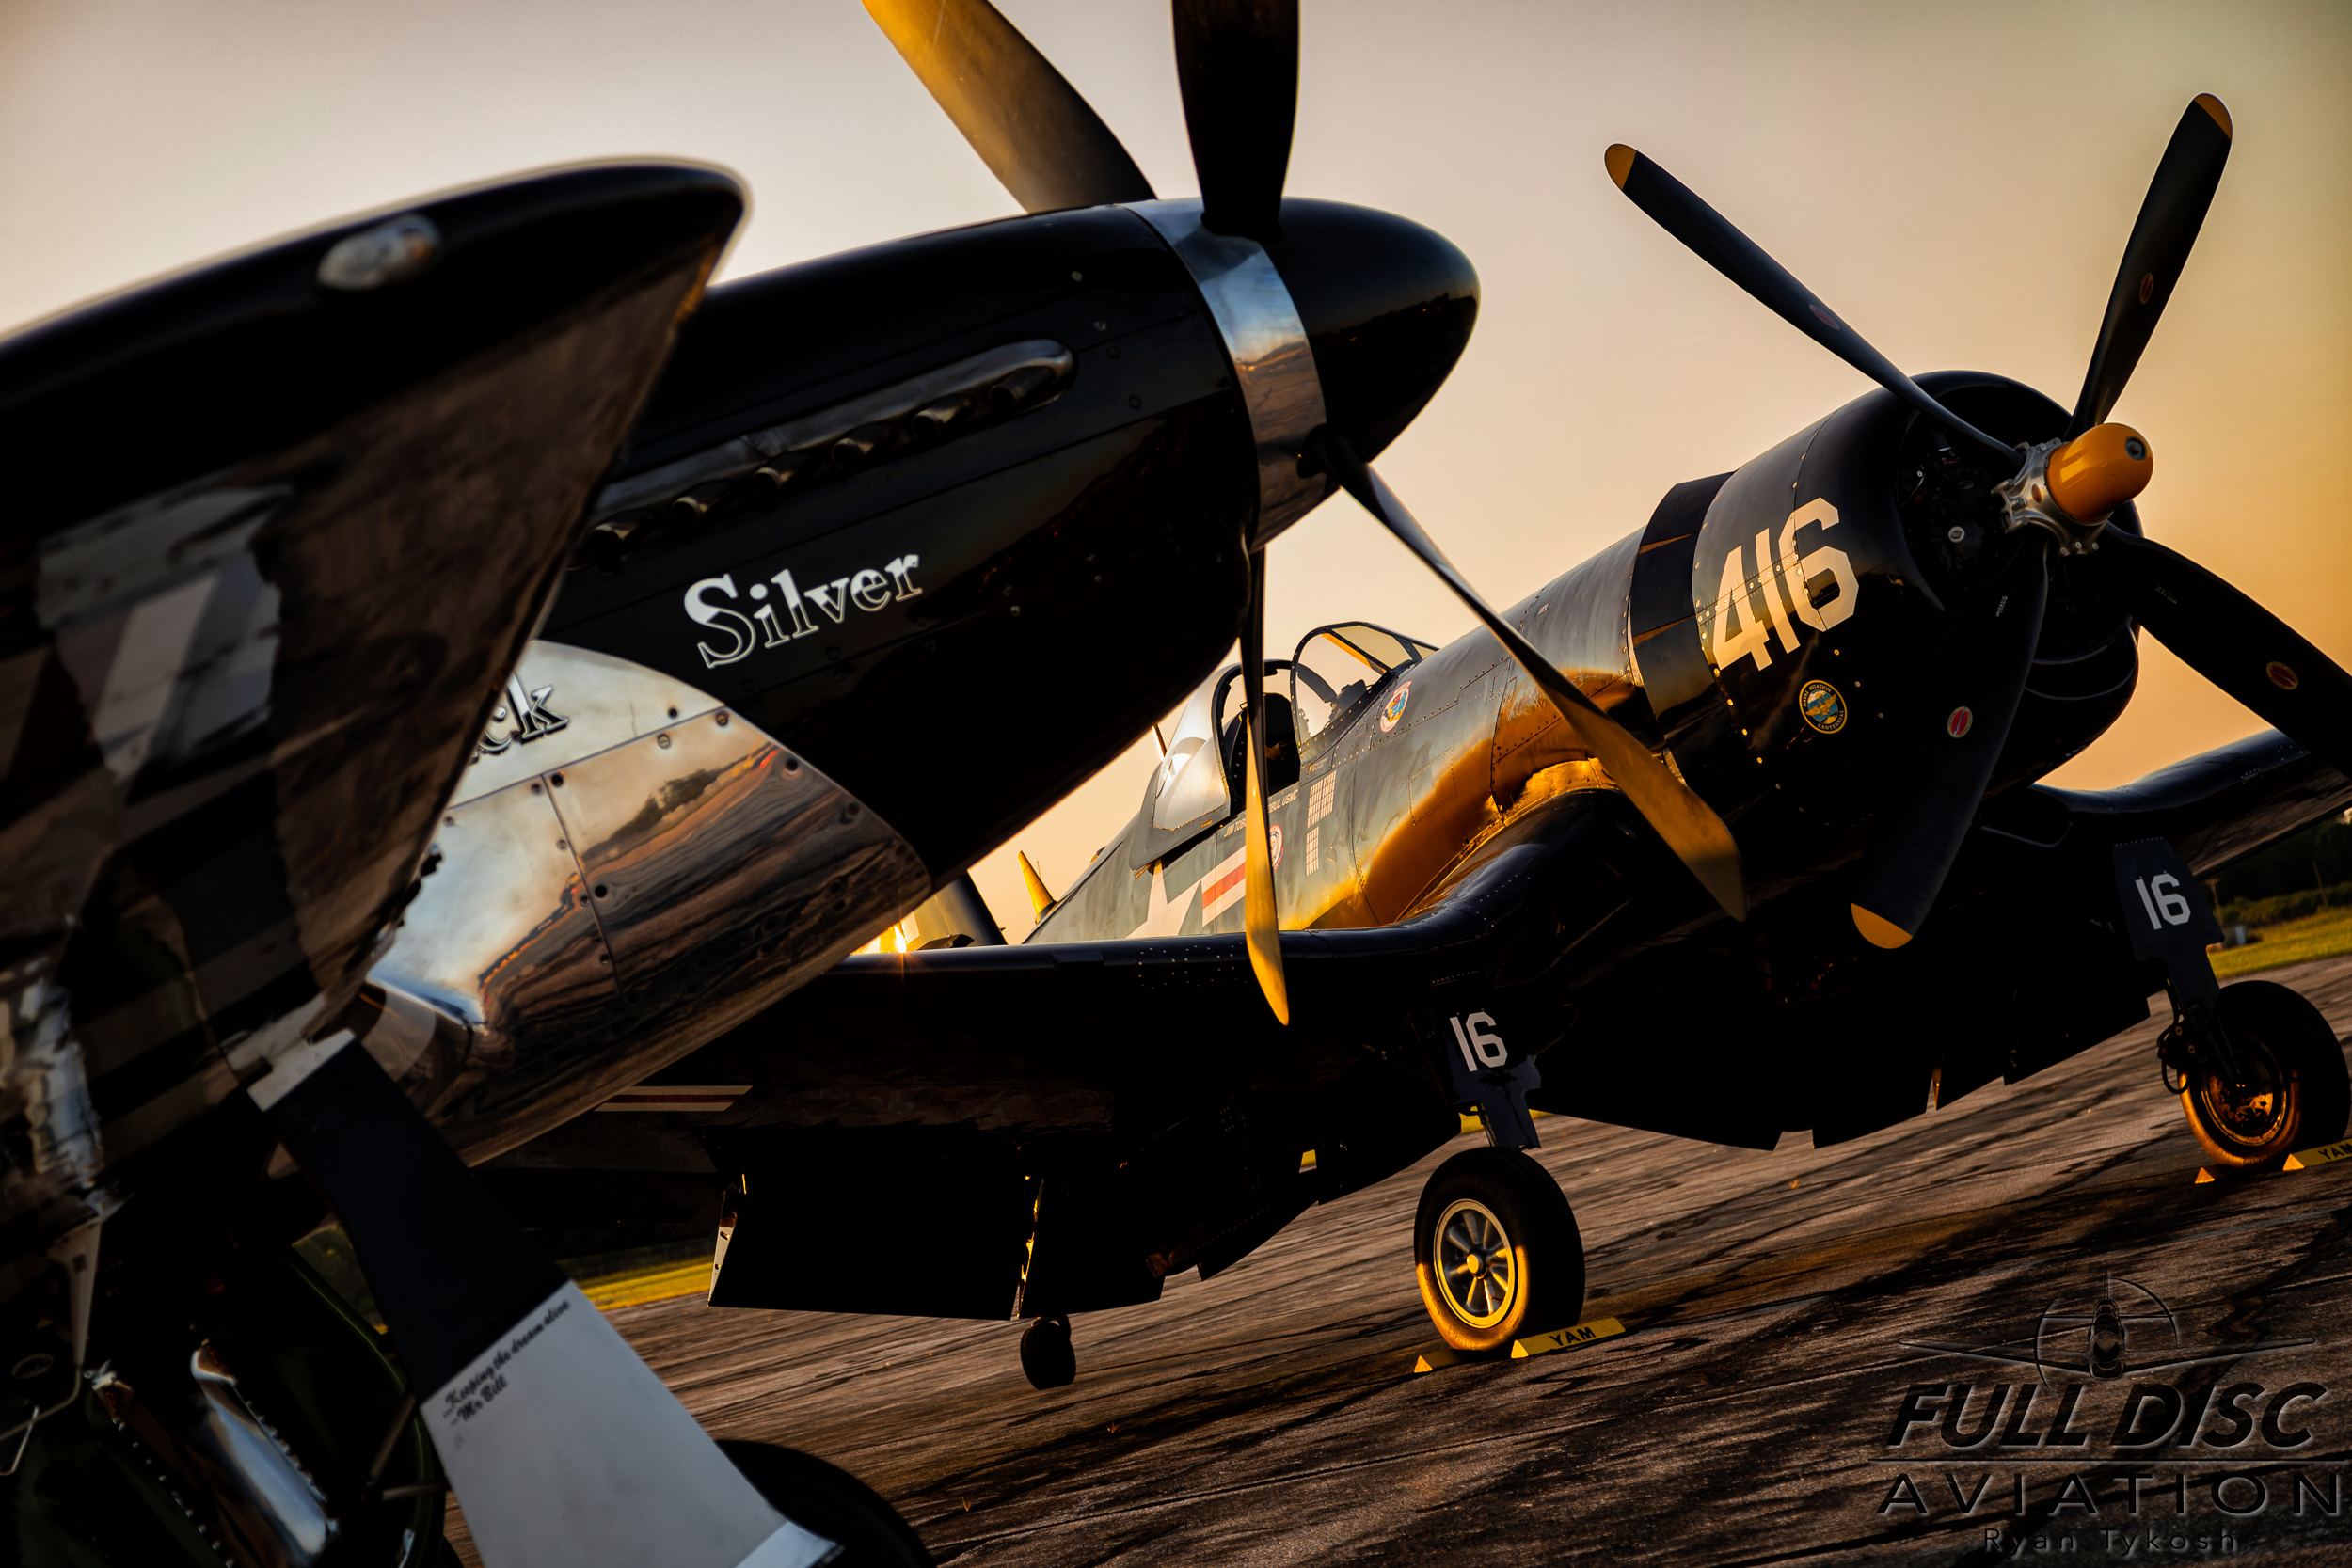 ClassOf45_FullDiscAviation_RyanTykosh_August 01, 2019_02.jpg